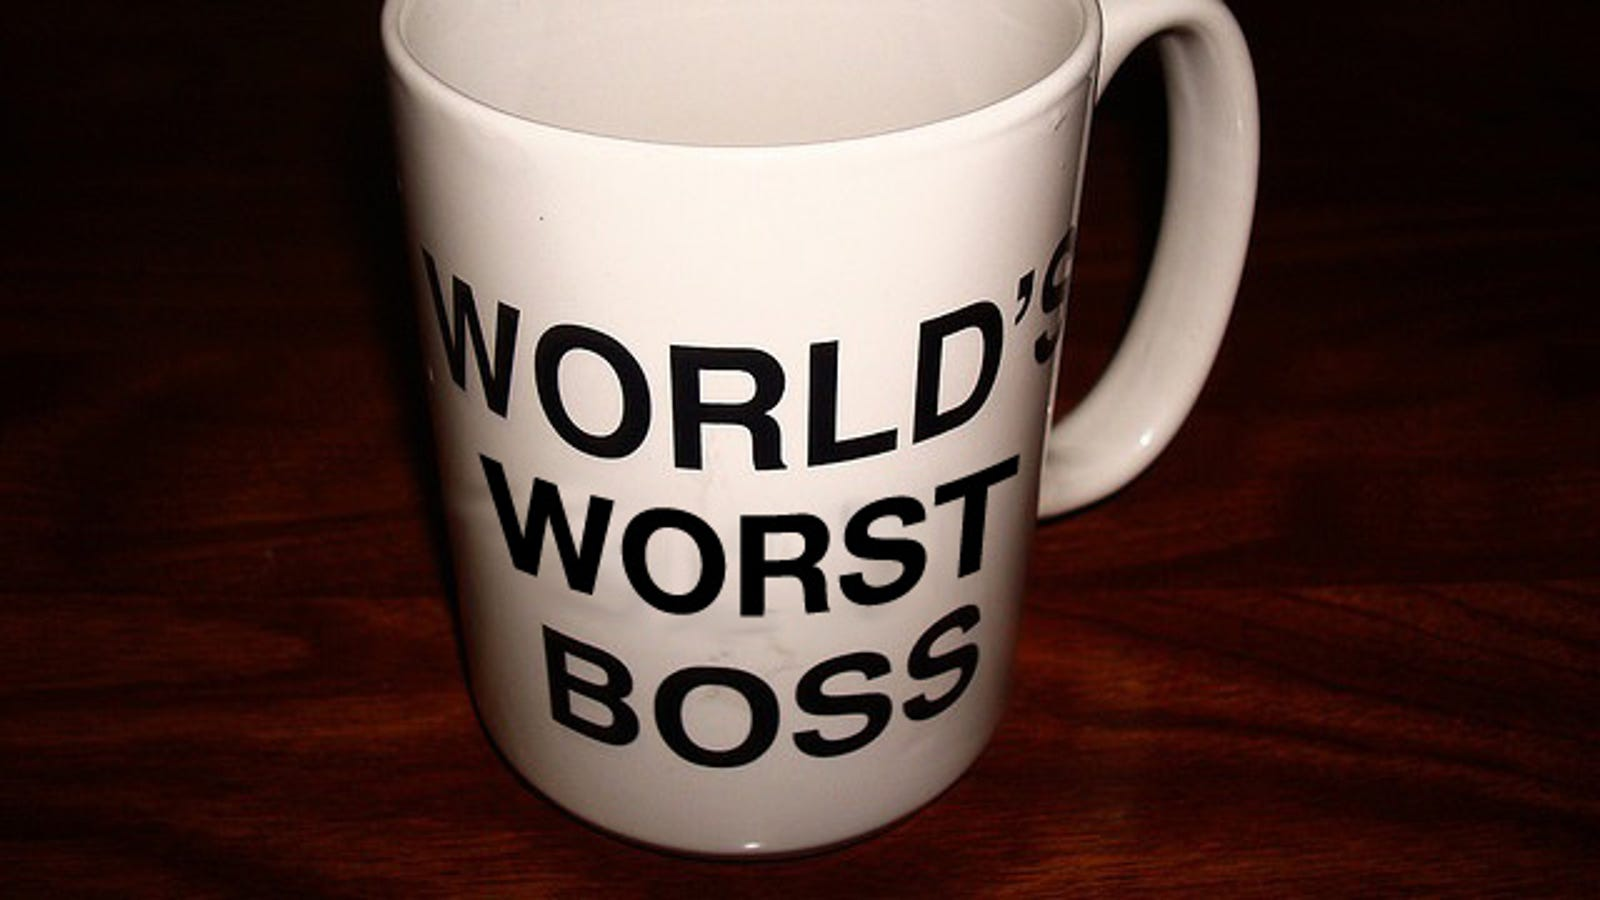 How to Effectively Complain About Your Boss